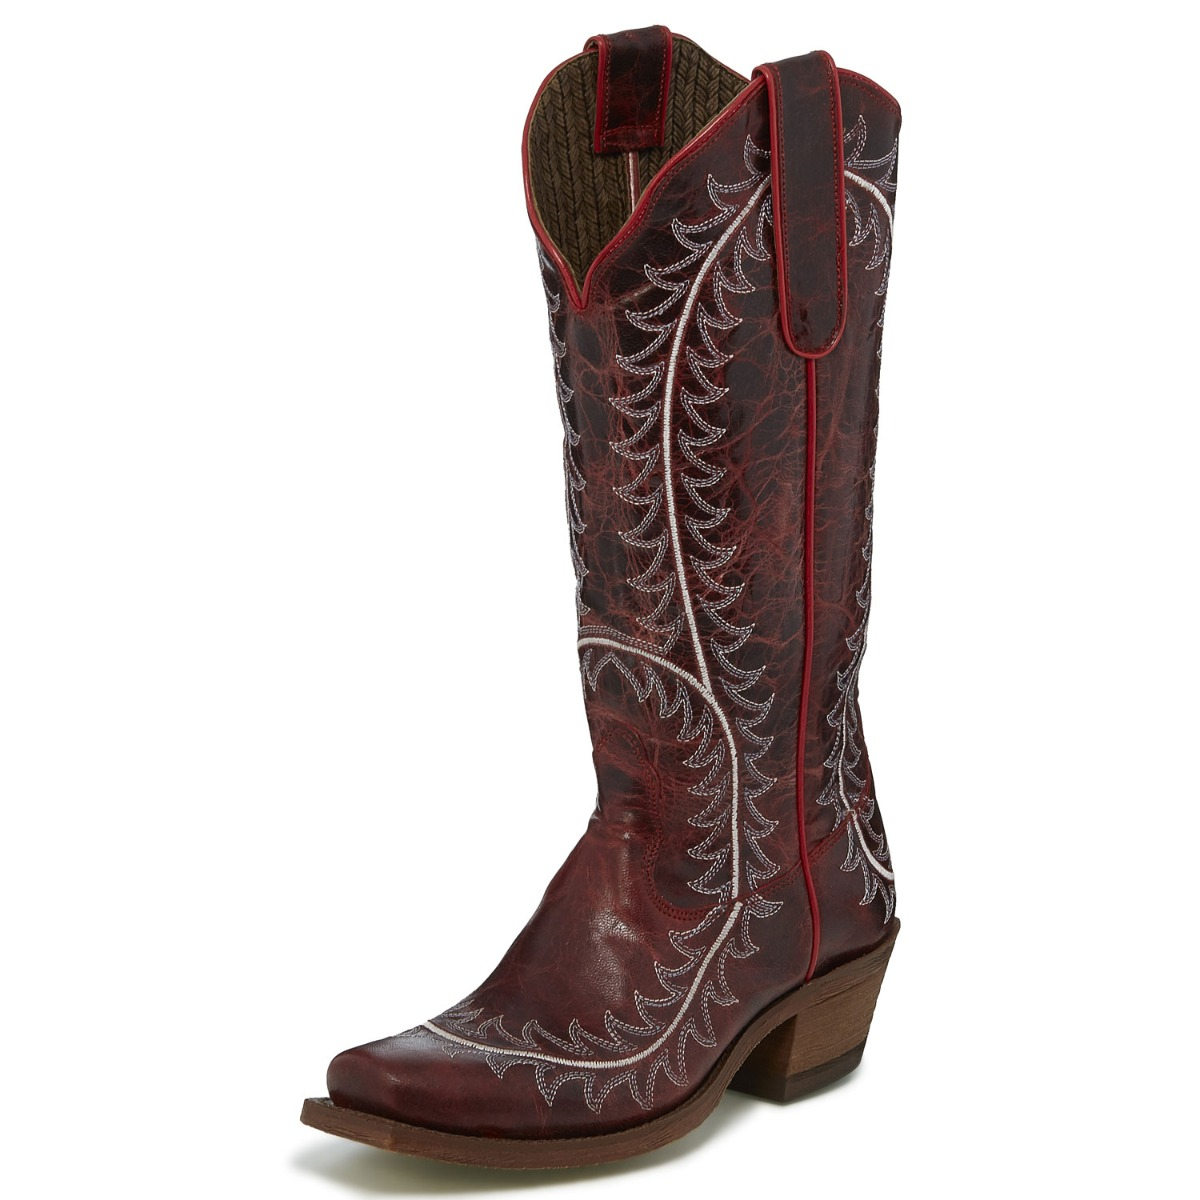 Nocona Women's Red Narrow Square Toe Western Boots